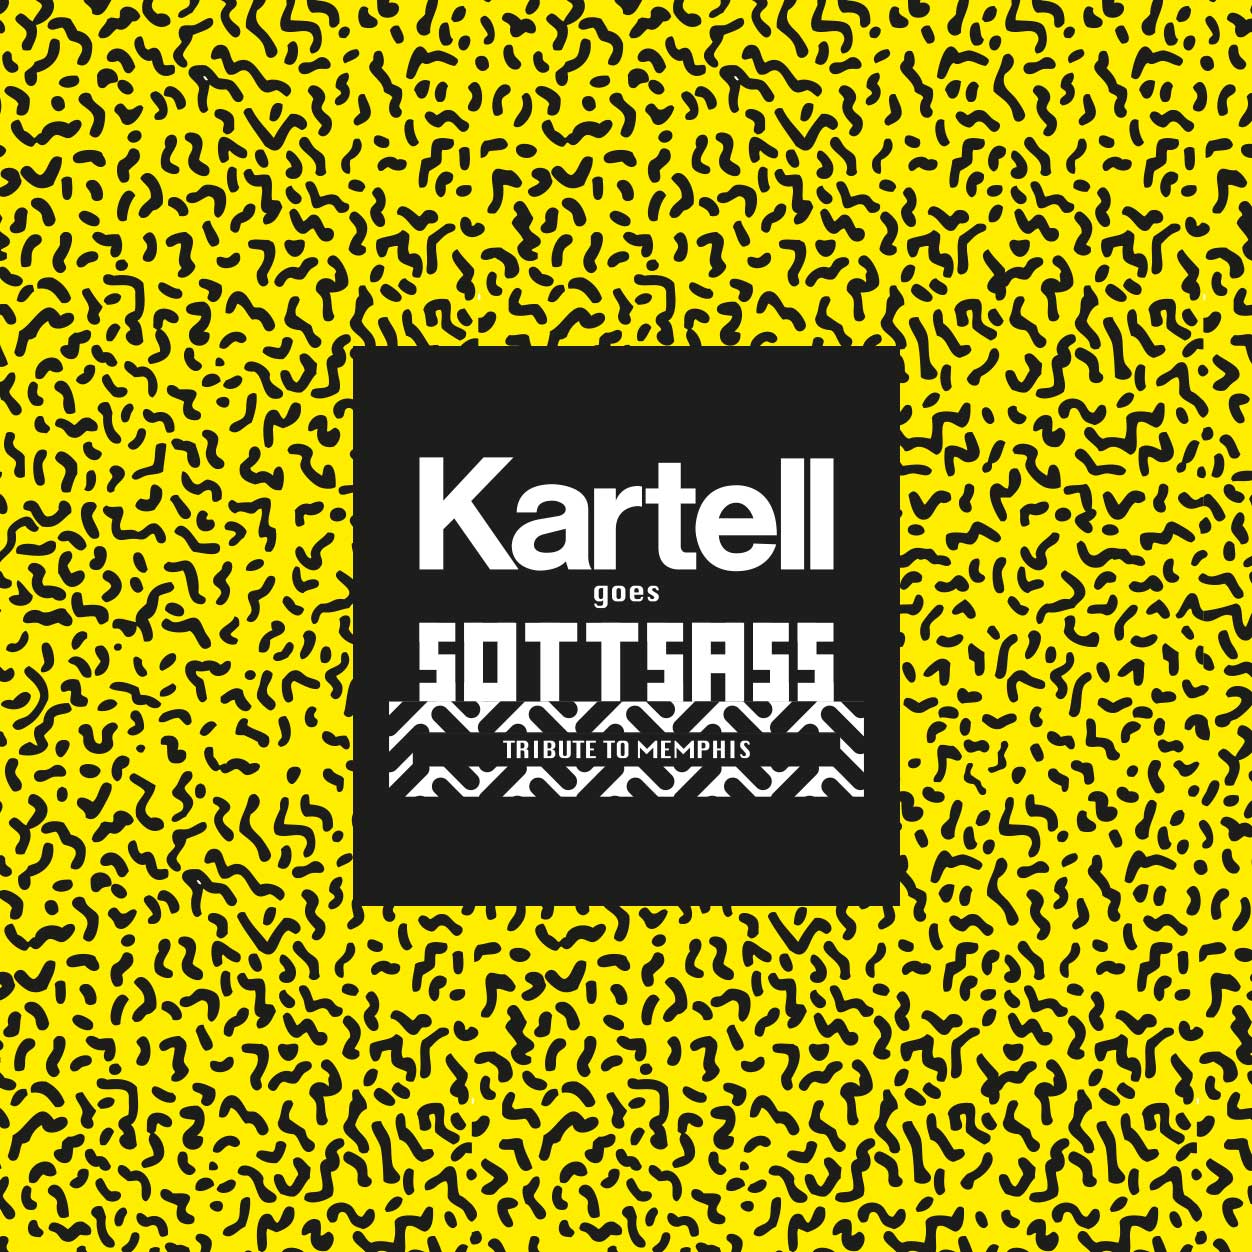 Kartell goes sottsass a tribute to memphis for Memphis sottsass